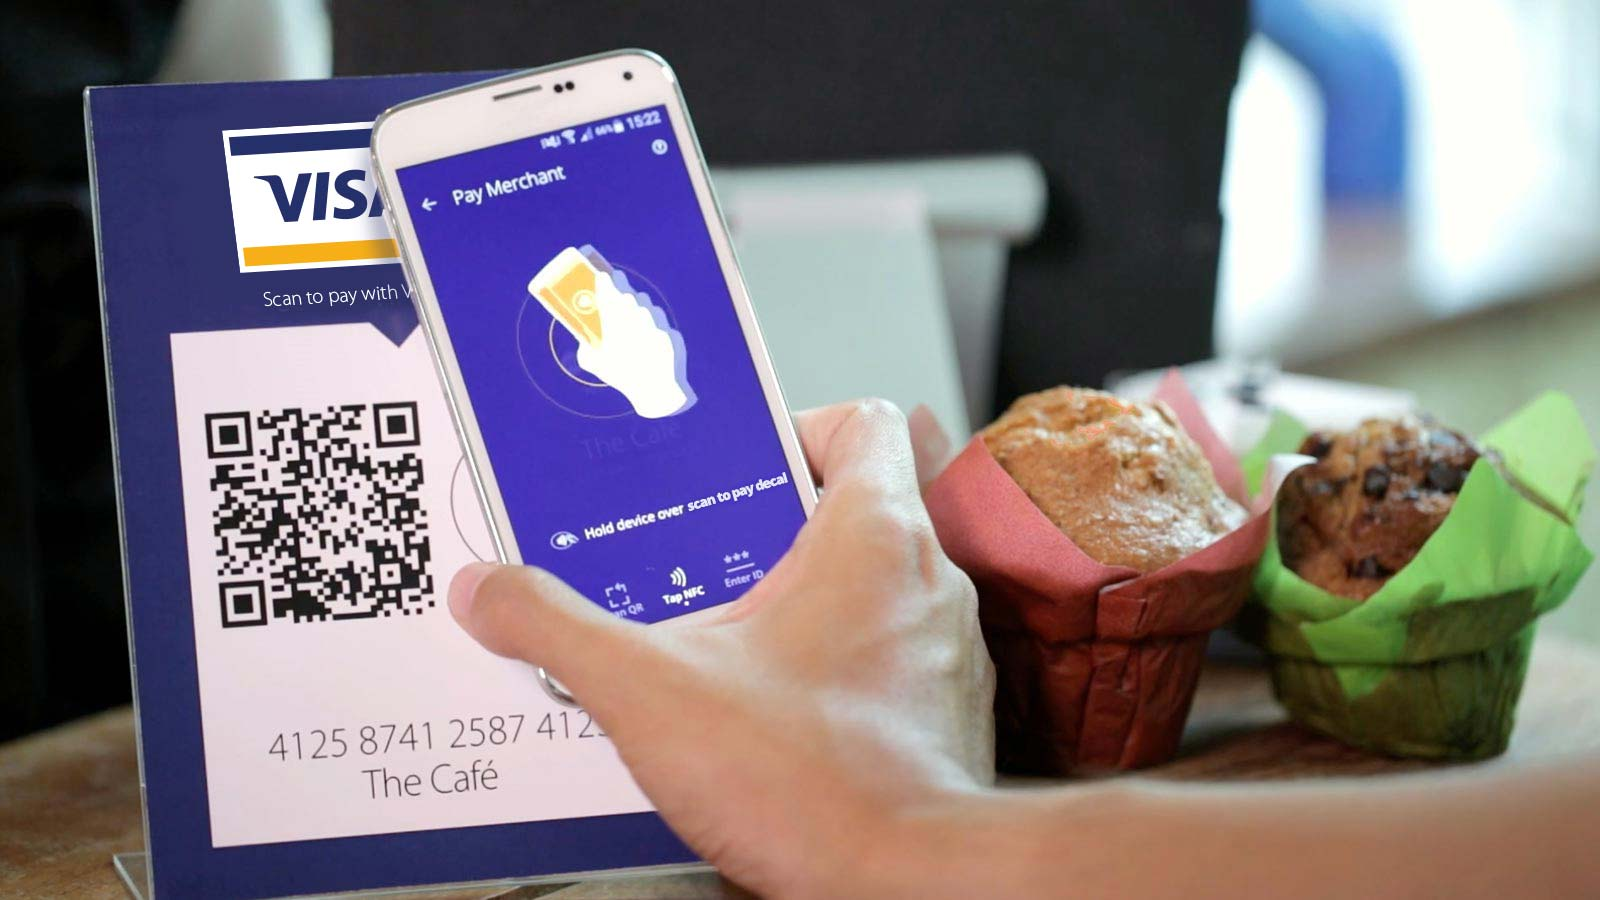 Use scan to pay in stores